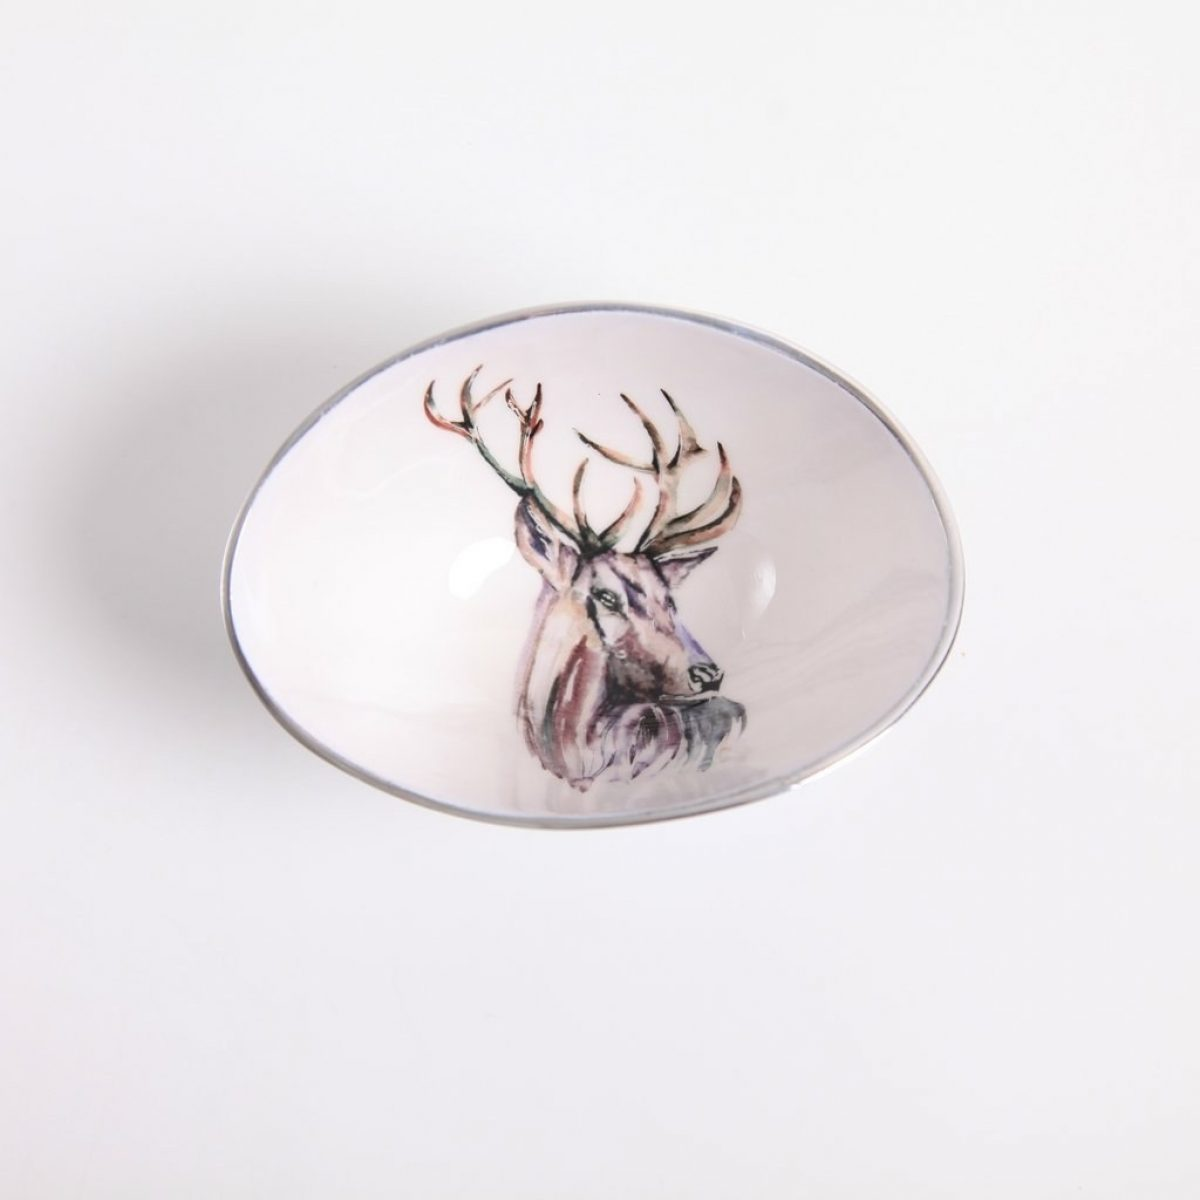 Small stag bowl 1